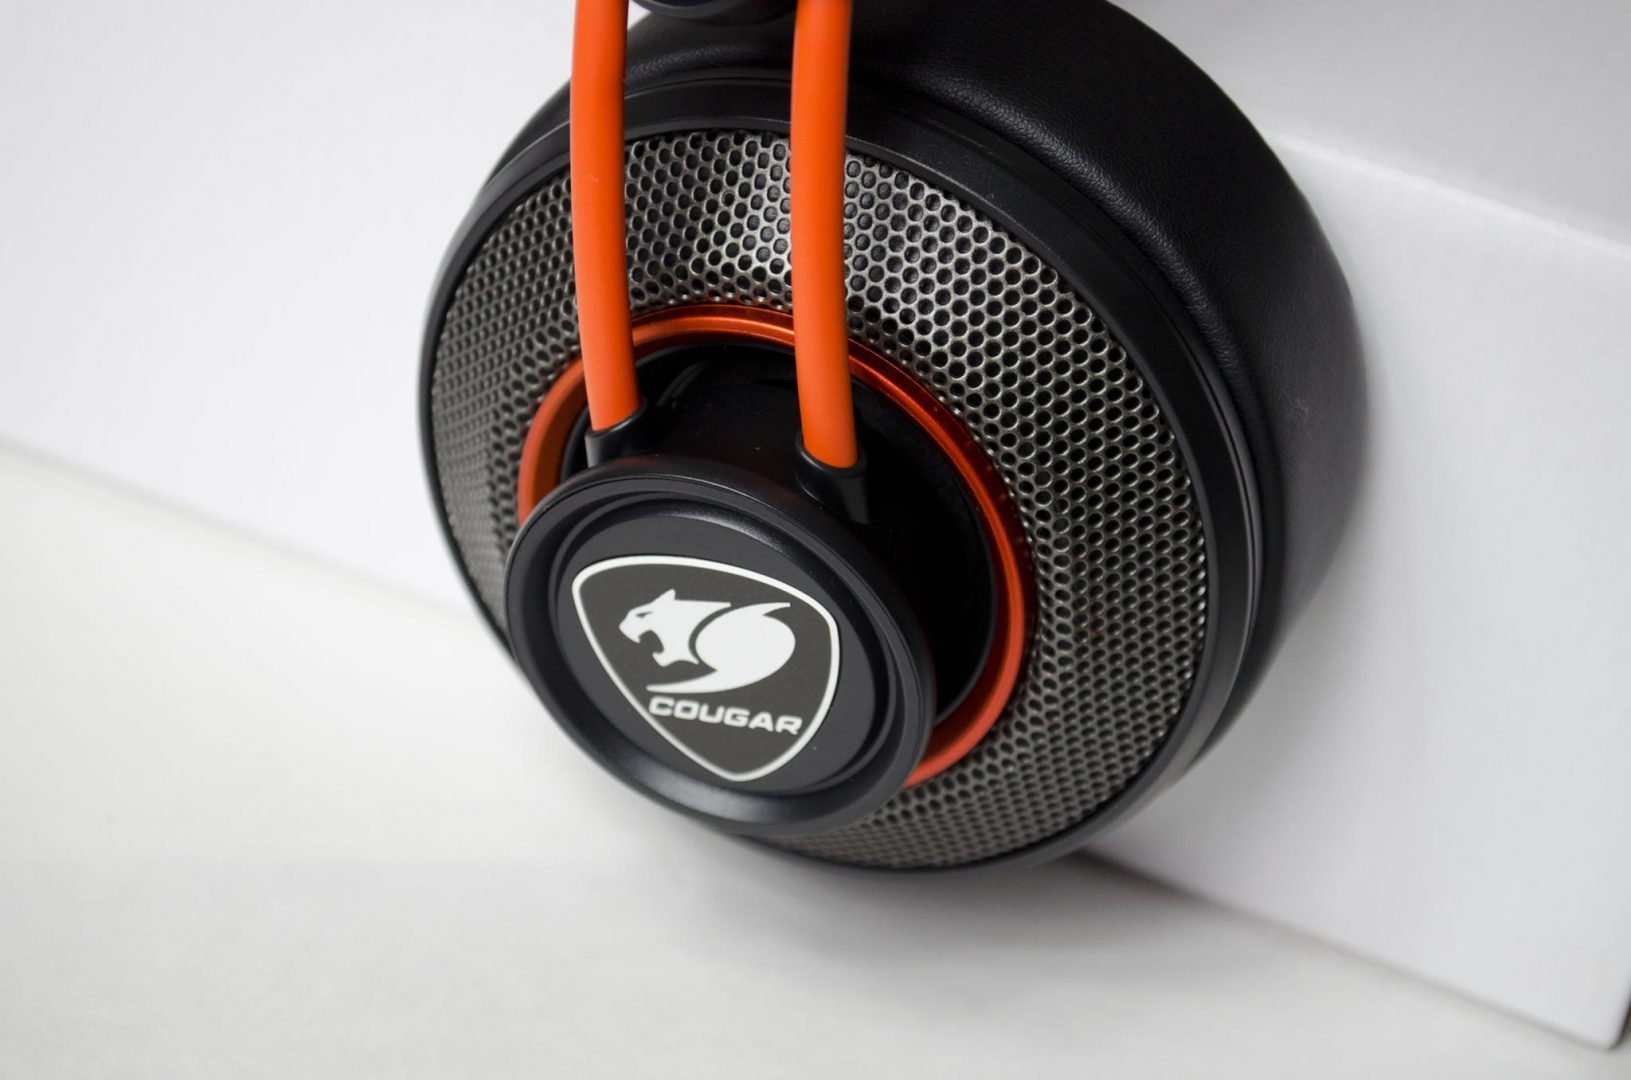 cougar immera headset review_2